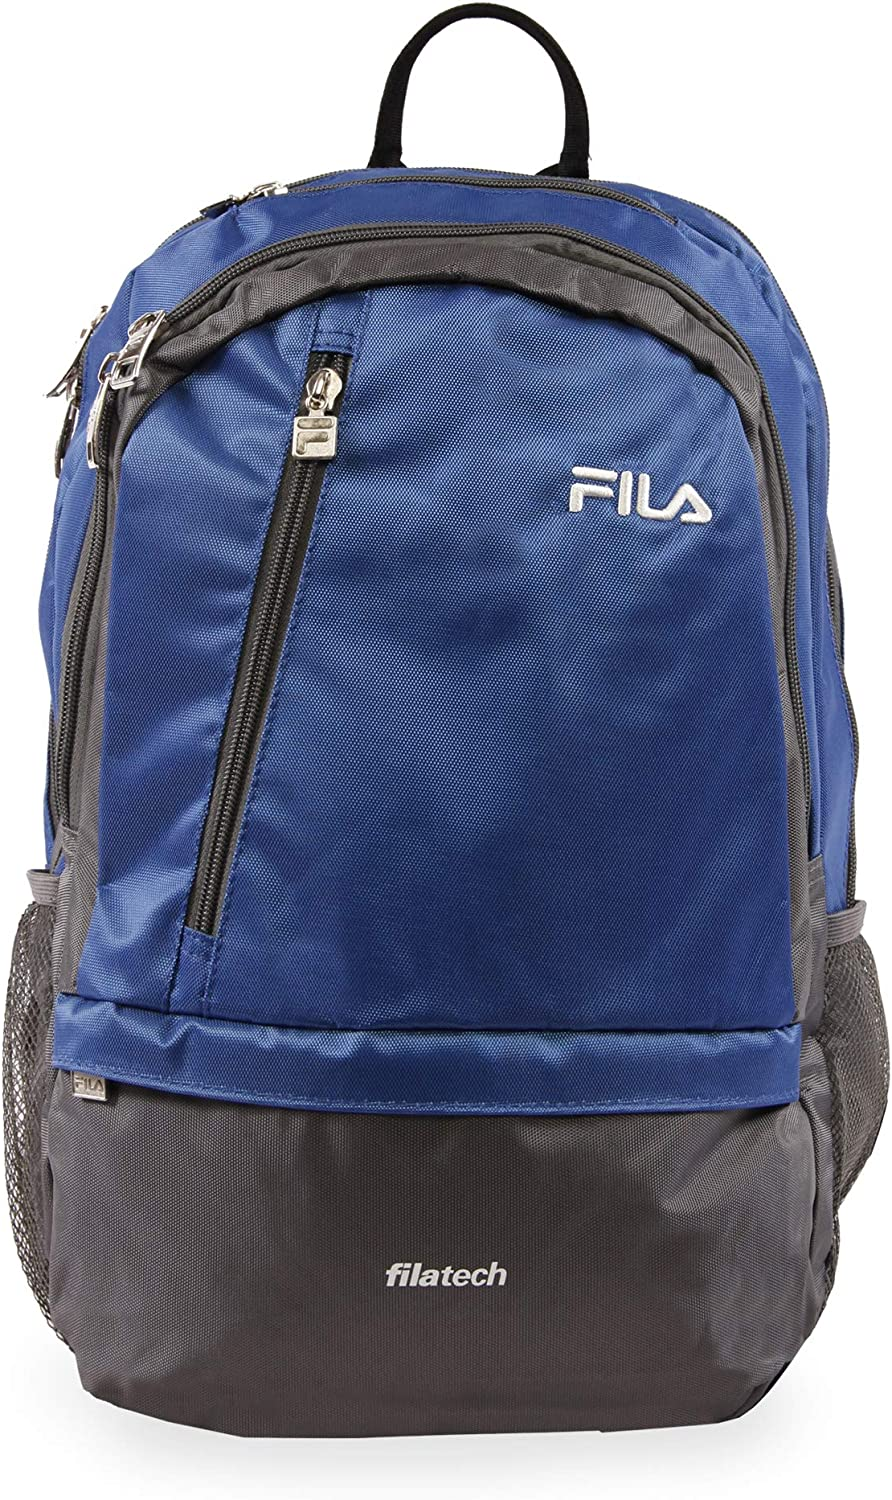 Fila Duel Tablet and Laptop Backpack, Blue, One Size